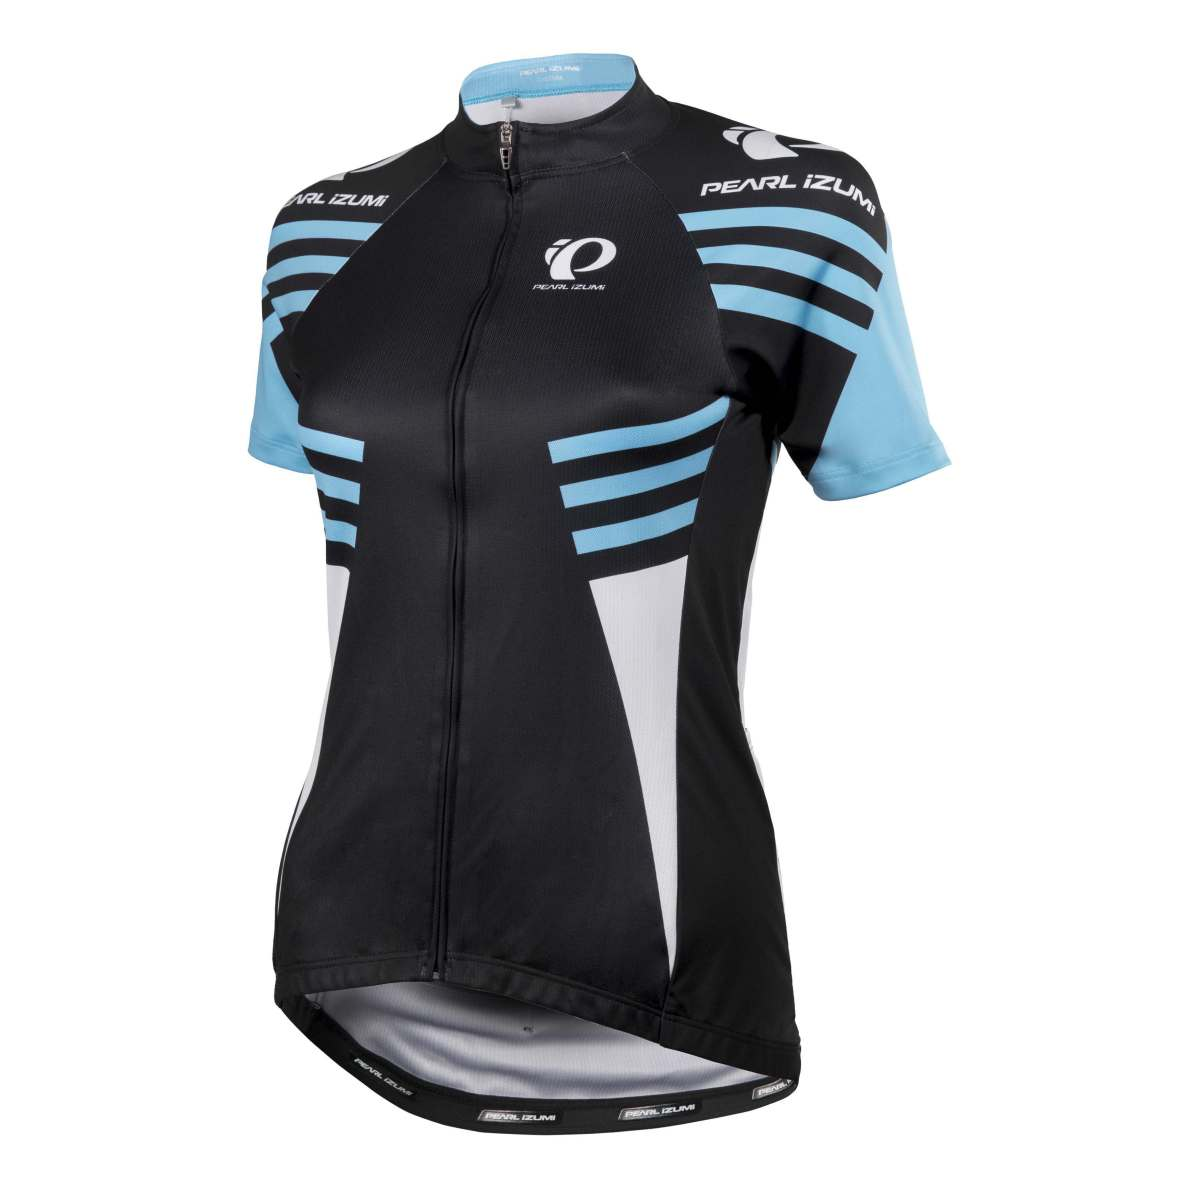 c55834f26 Pearl Izumi Womens Factory Store Elite Pursuit LTD Jersey Black Blue ...